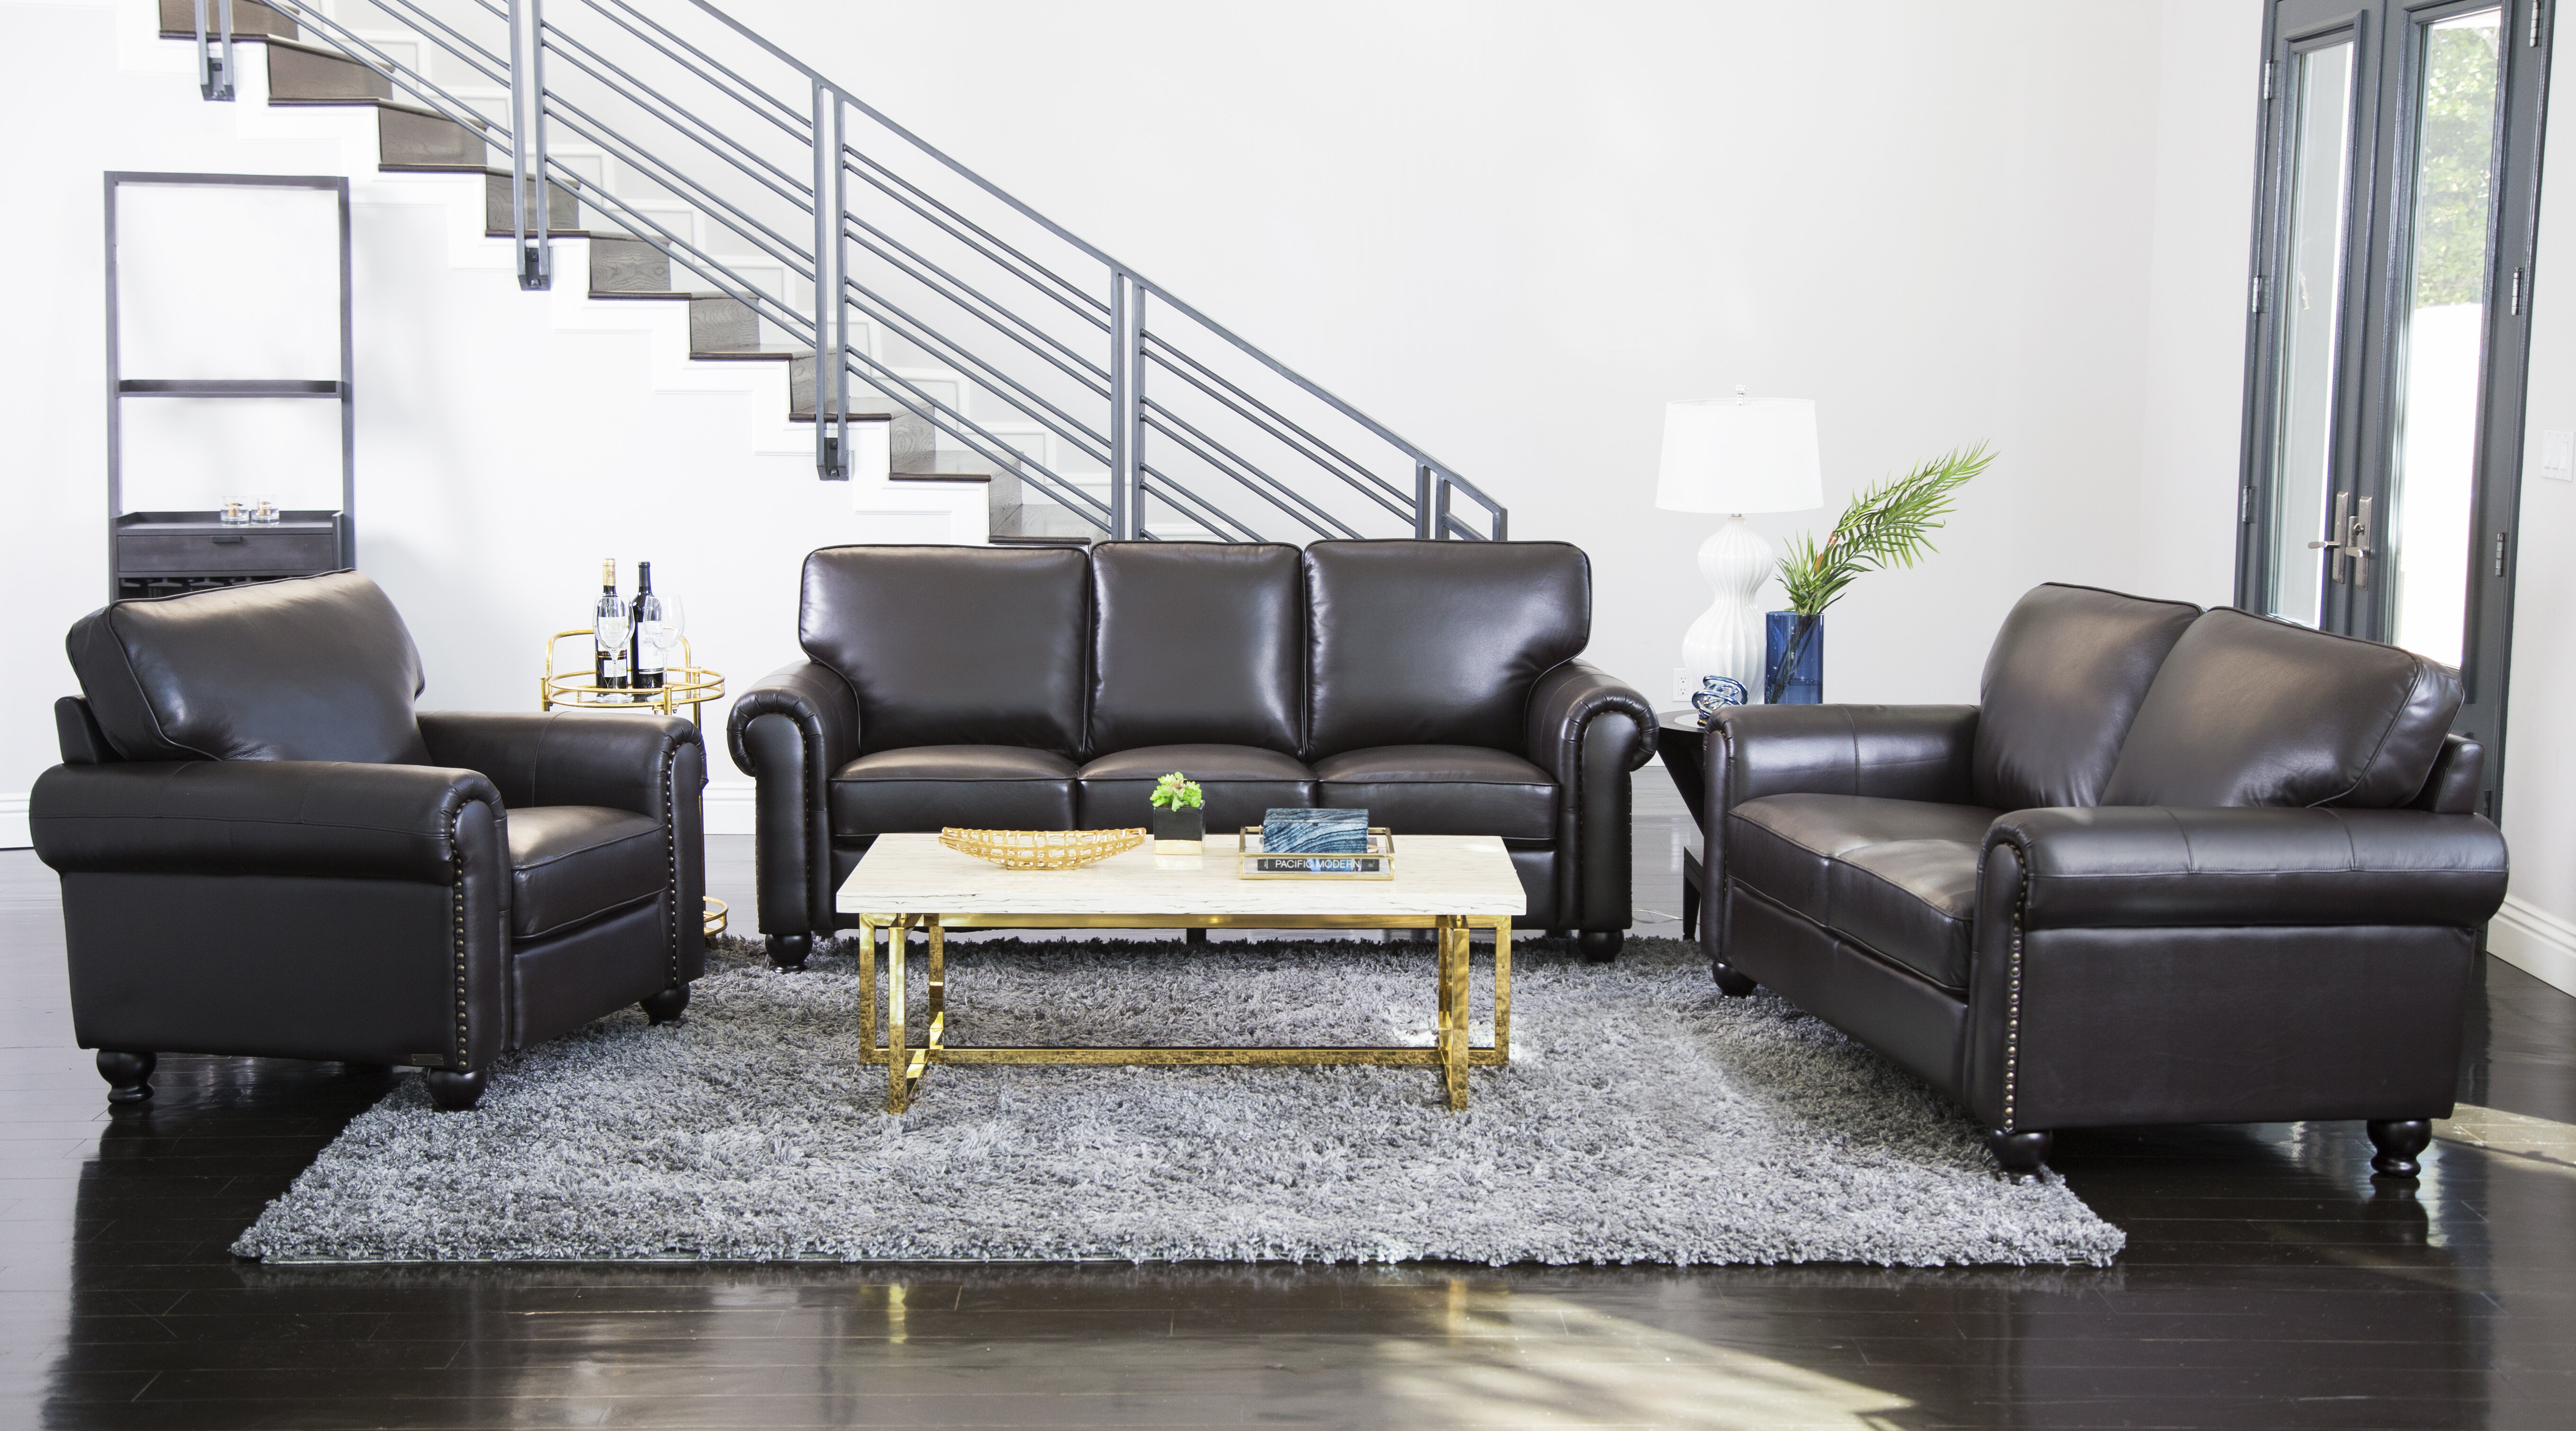 Darby home co coggins 3 piece leather living room set reviews wayfair